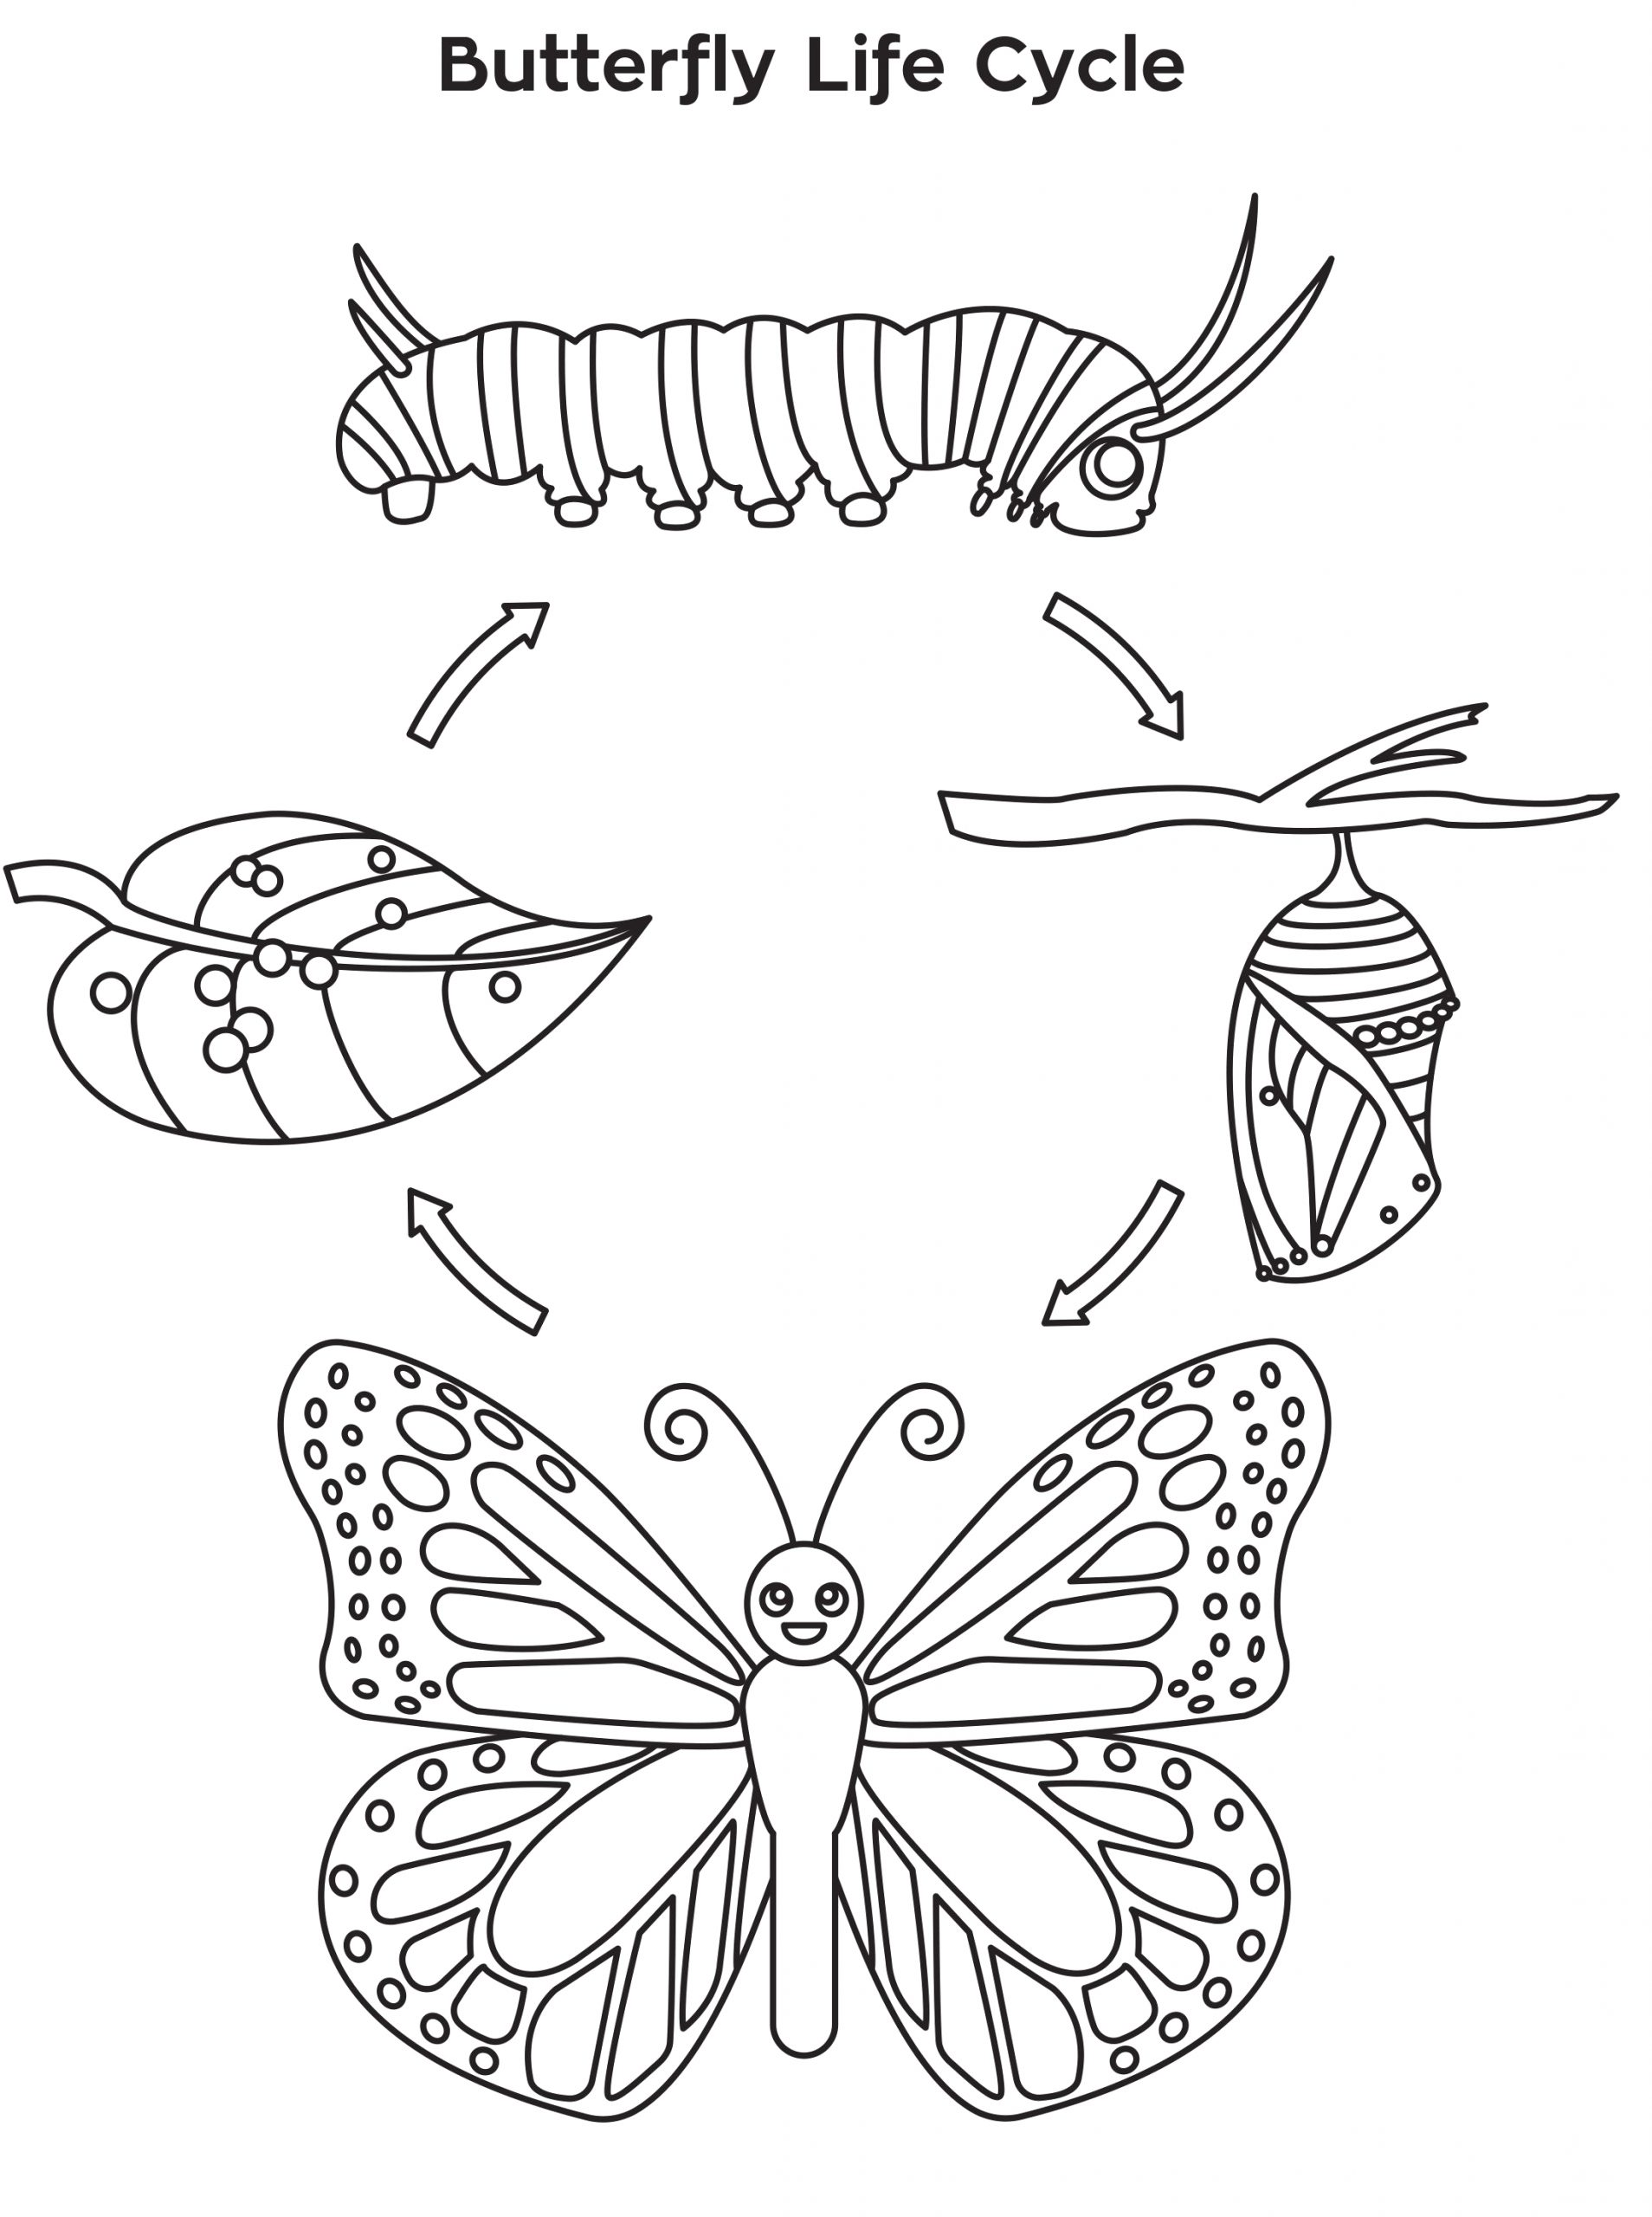 Butterfly Life Cycle Coloring Pages for Kids Life Cycle Of A butterfly Coloring Page Free Printable